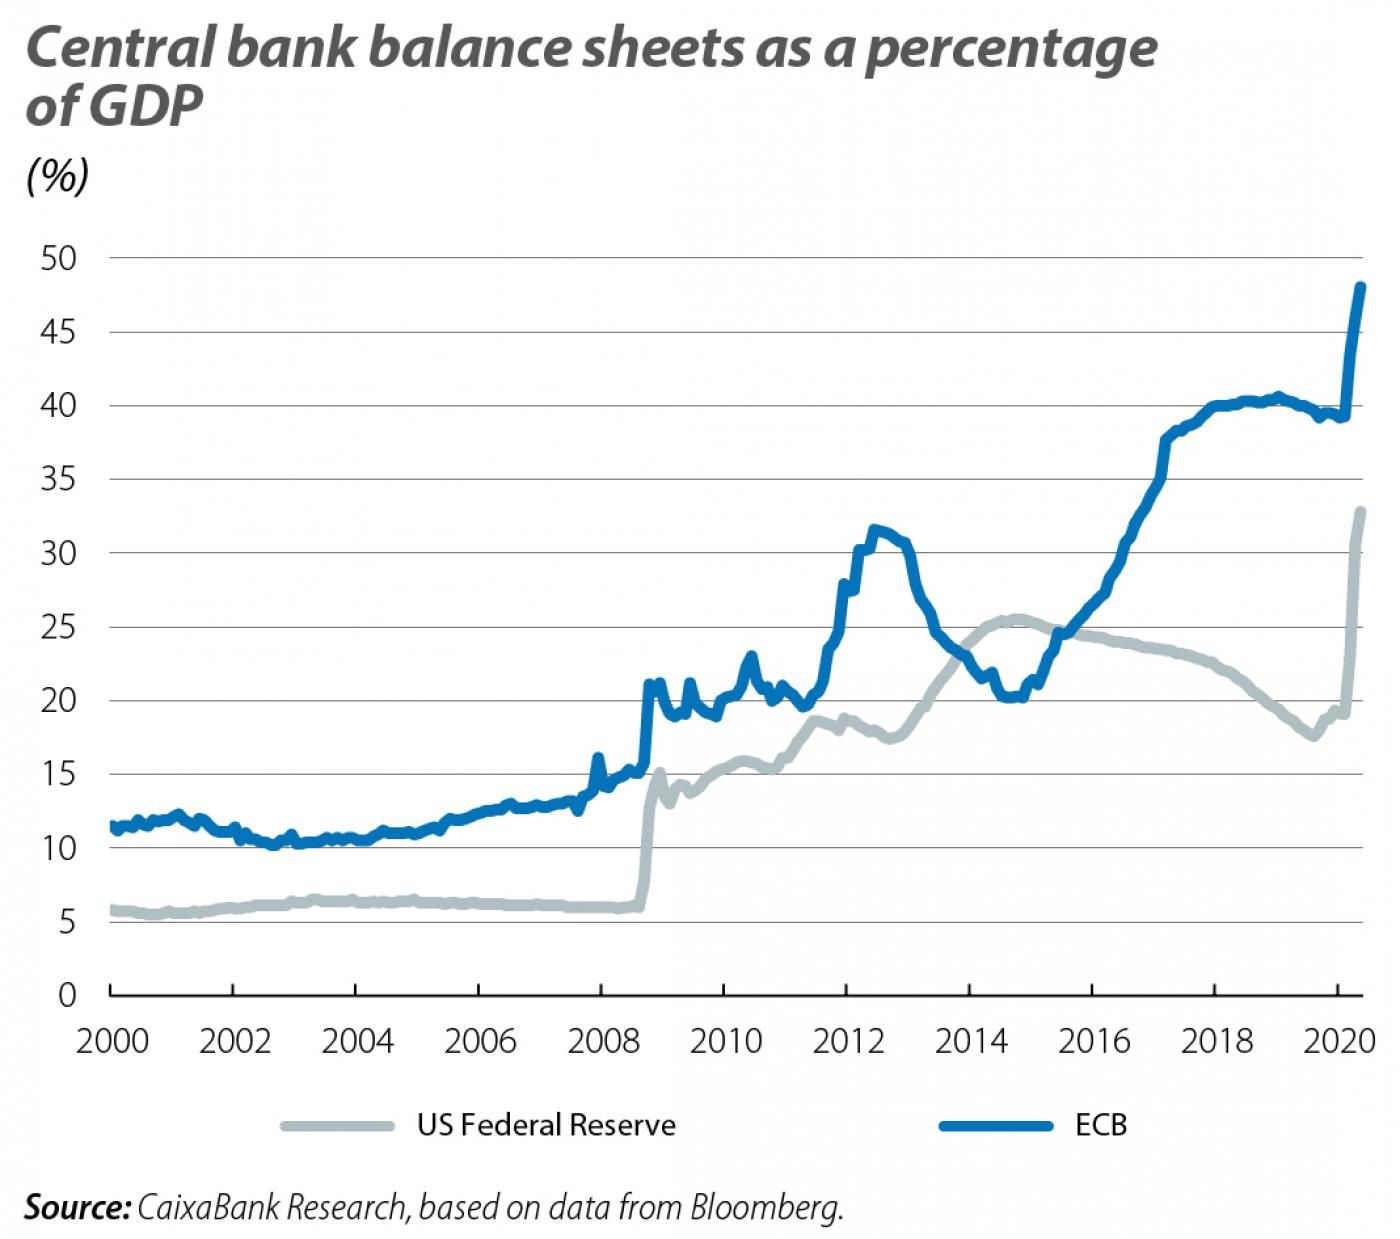 Central bank balance sheets as a percentage of GDP